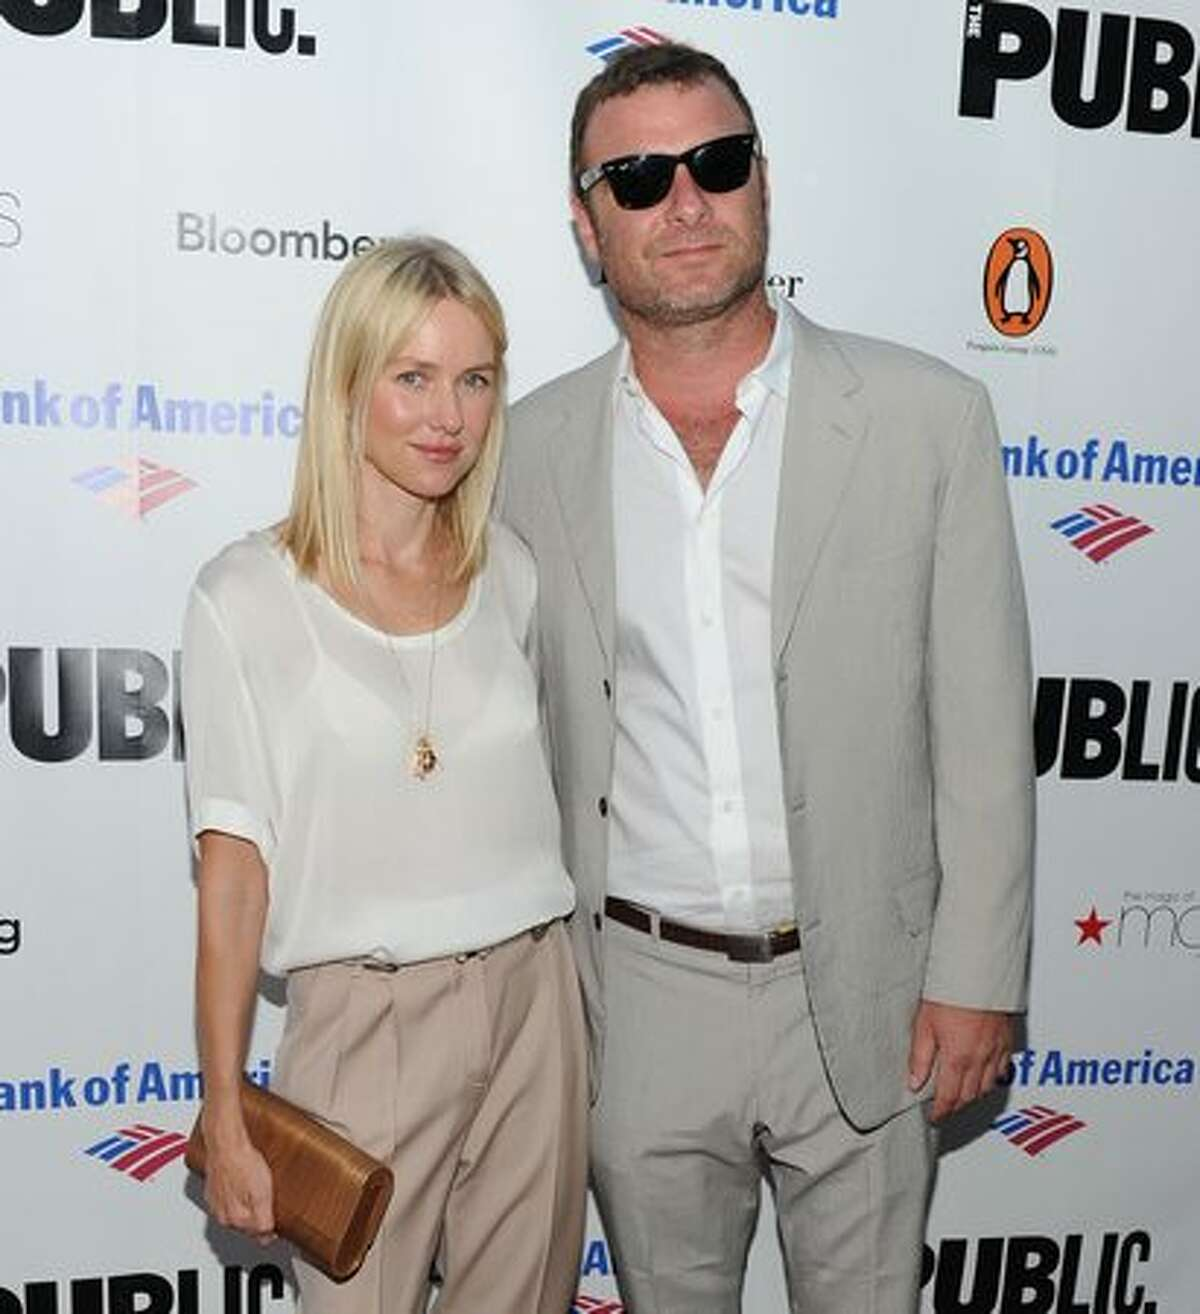 Actress Naomi Watts and actor Liev Schreiber attend the 2010 Public Theater Gala at the Delacorte Theater.